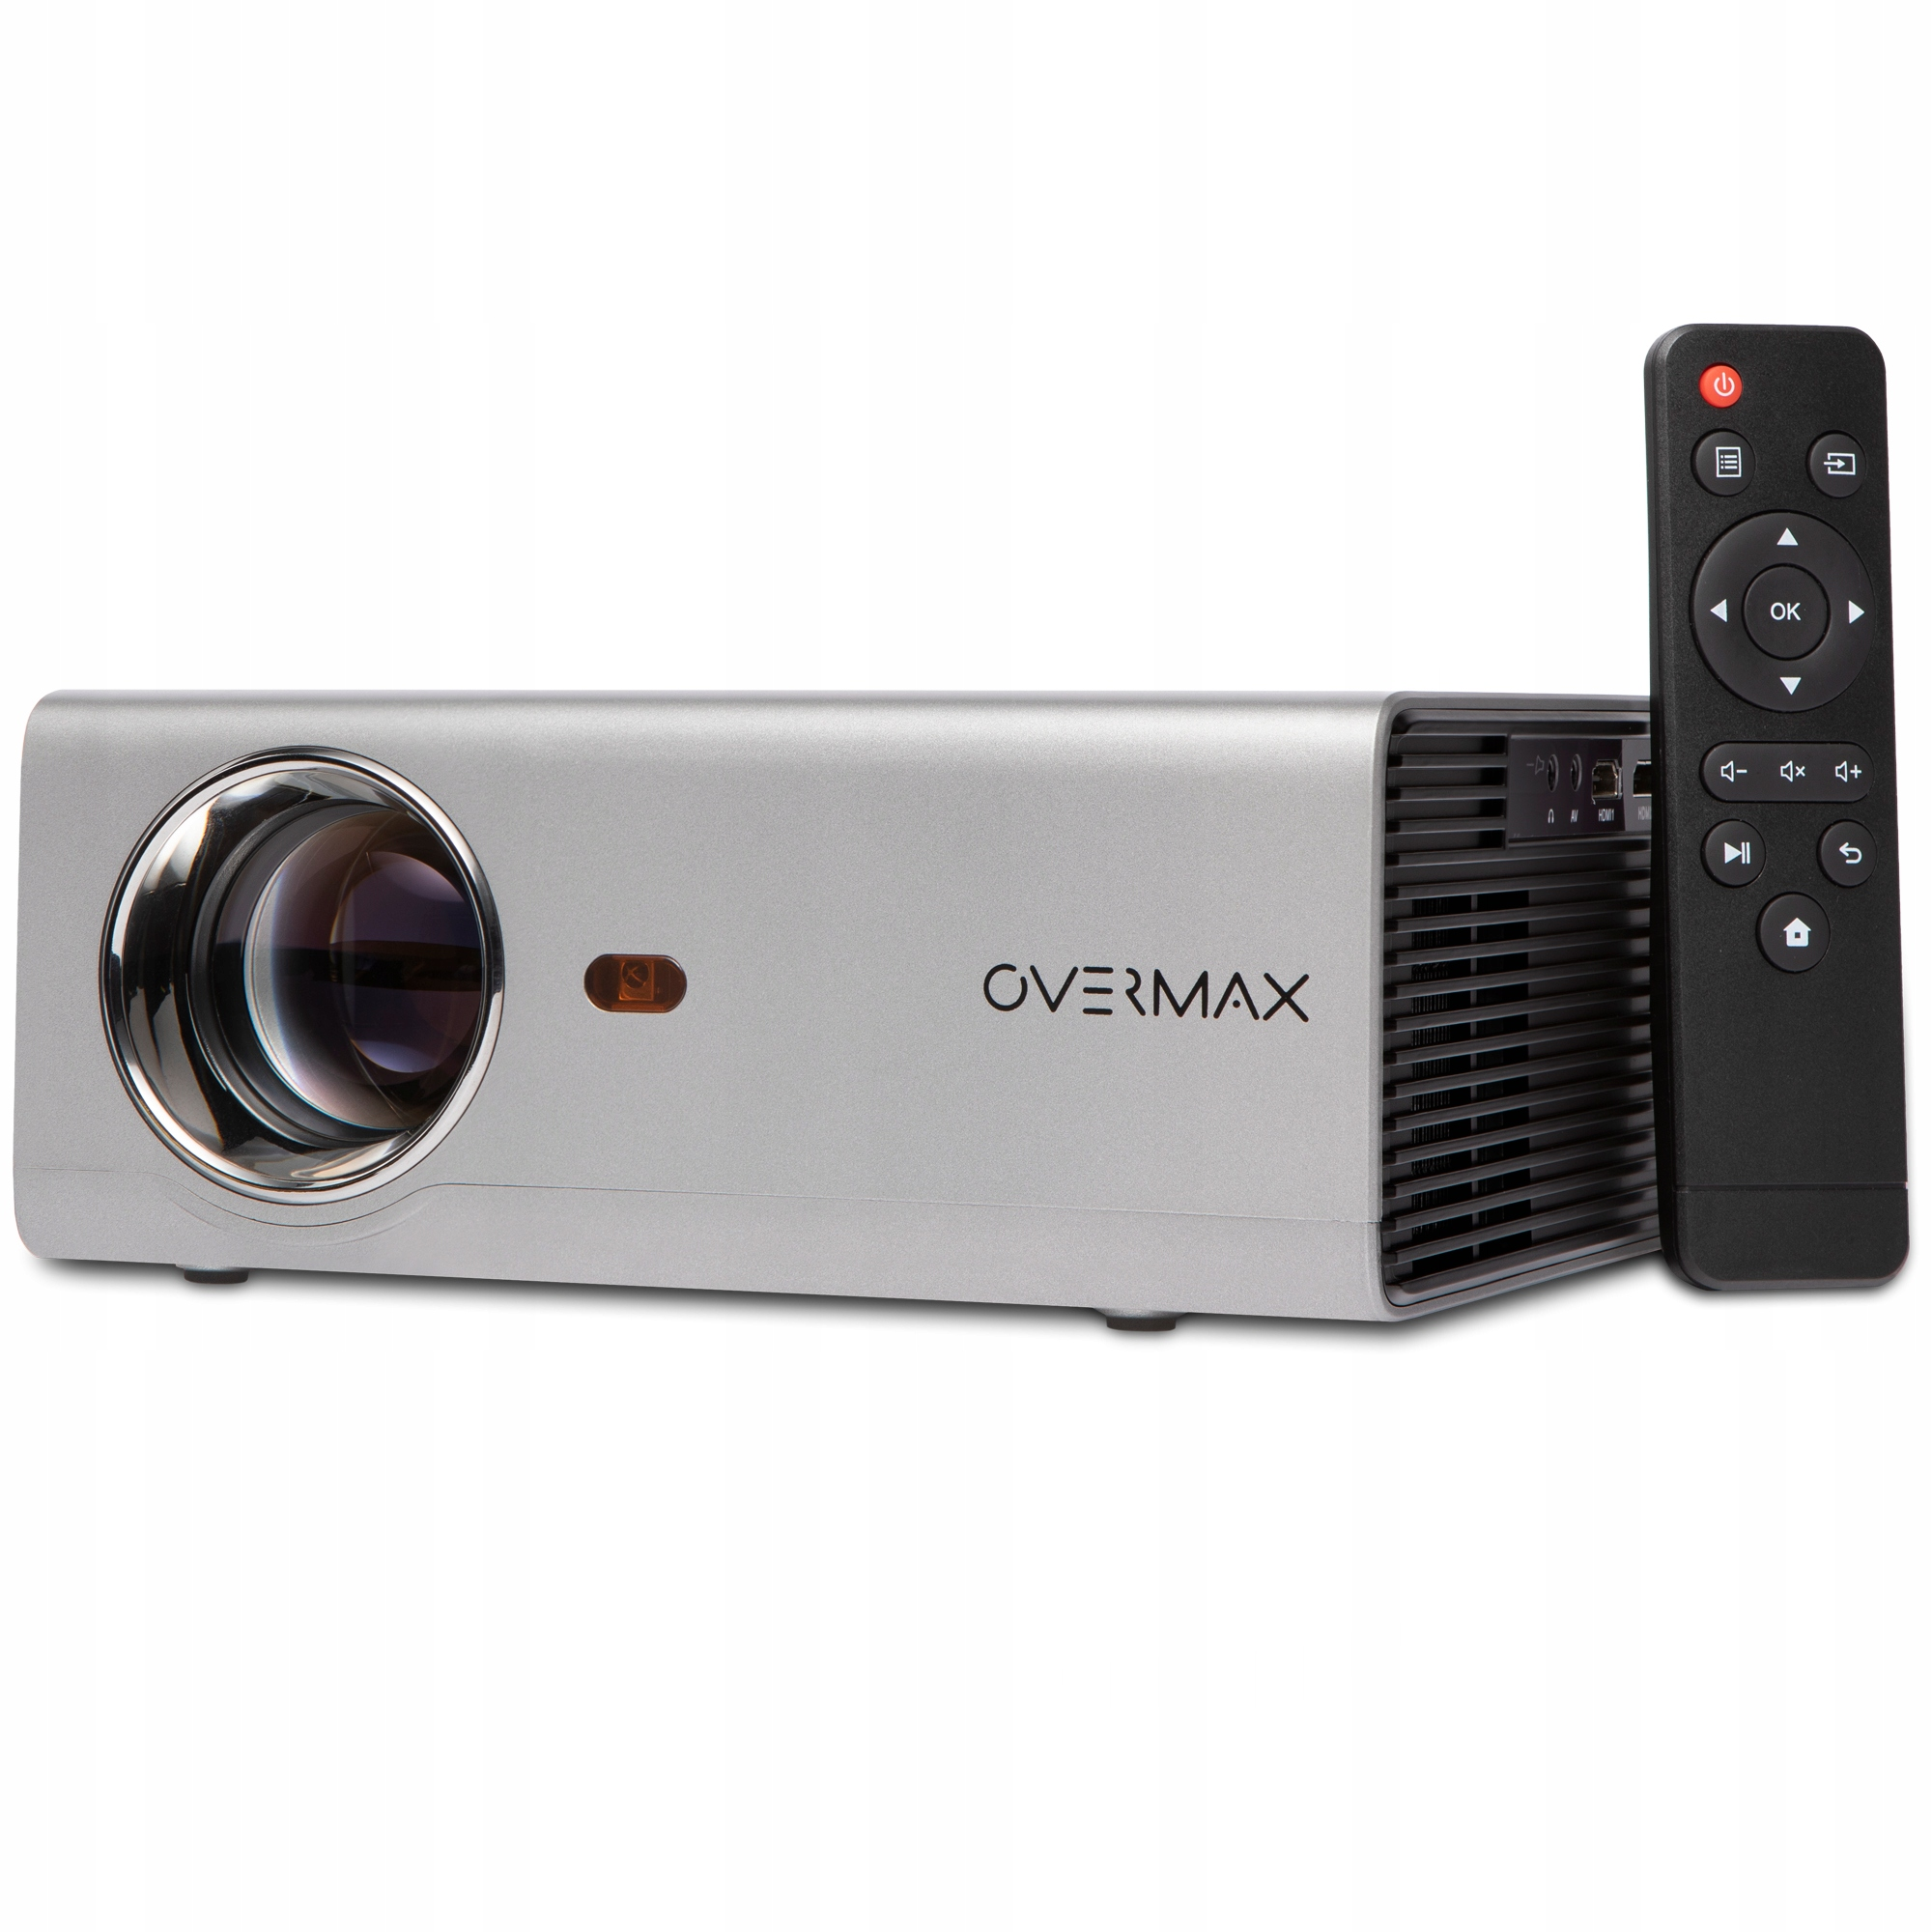 PROJECTOR OVERMAX MULTIPIC 3.5 LED HD WiFi PROJECTOR Overmax-merke